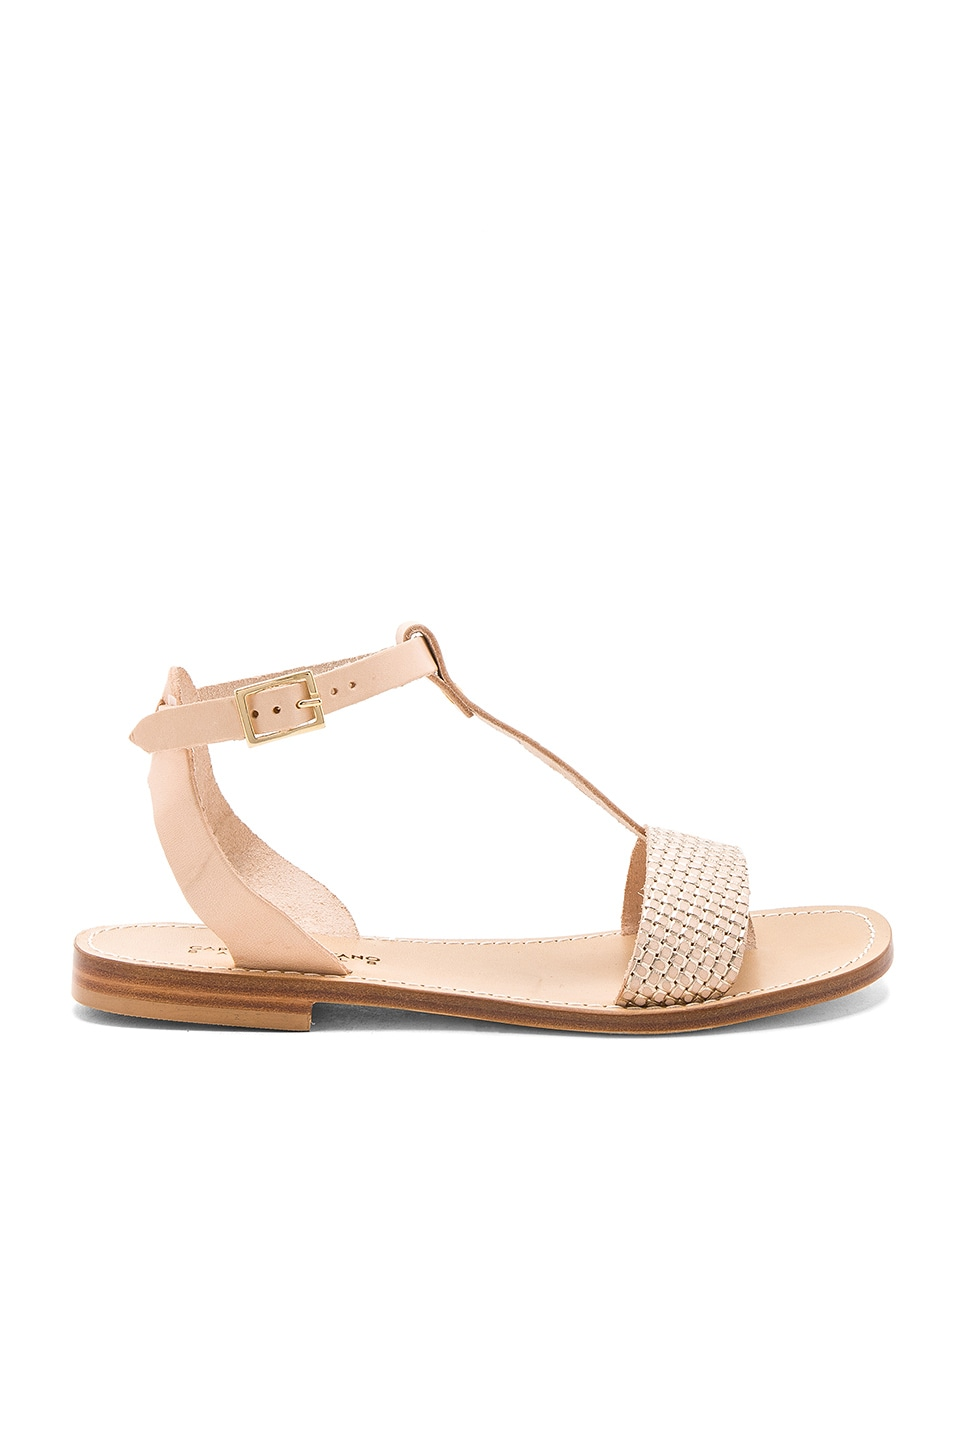 Shop Capri Positano Aurelia Sandal shoes